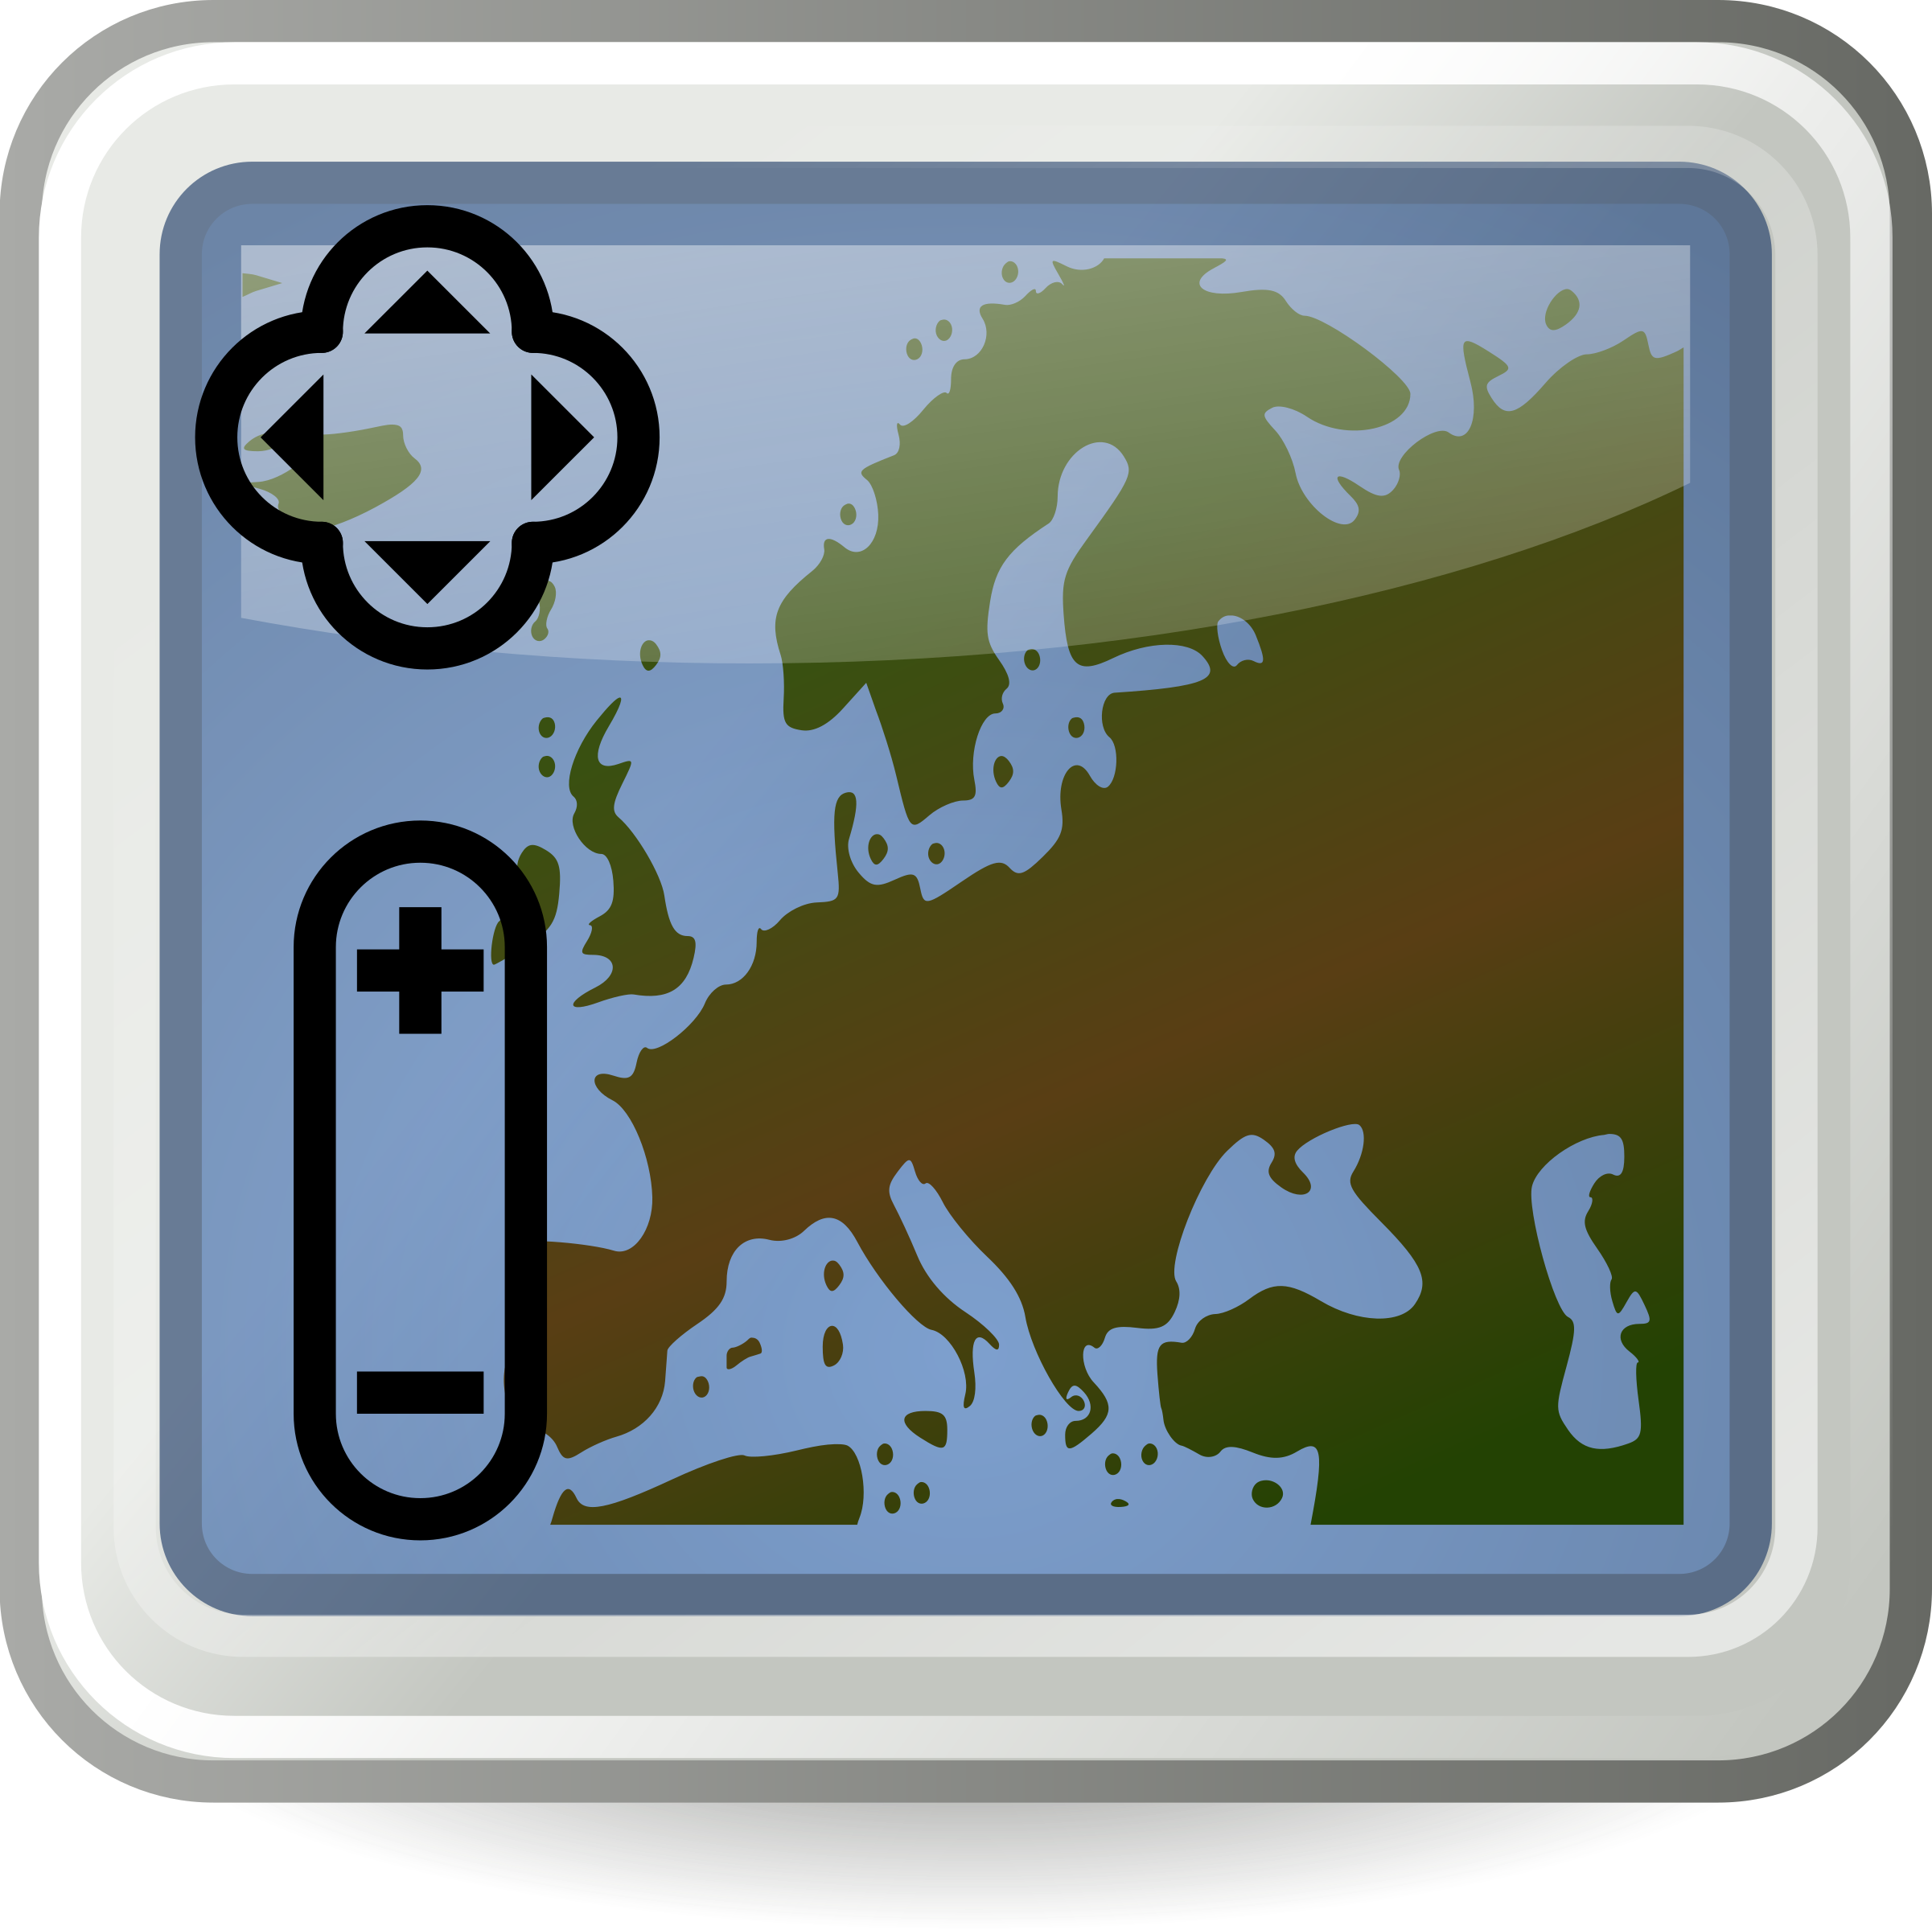 Tango style map application icon by flooredmusic